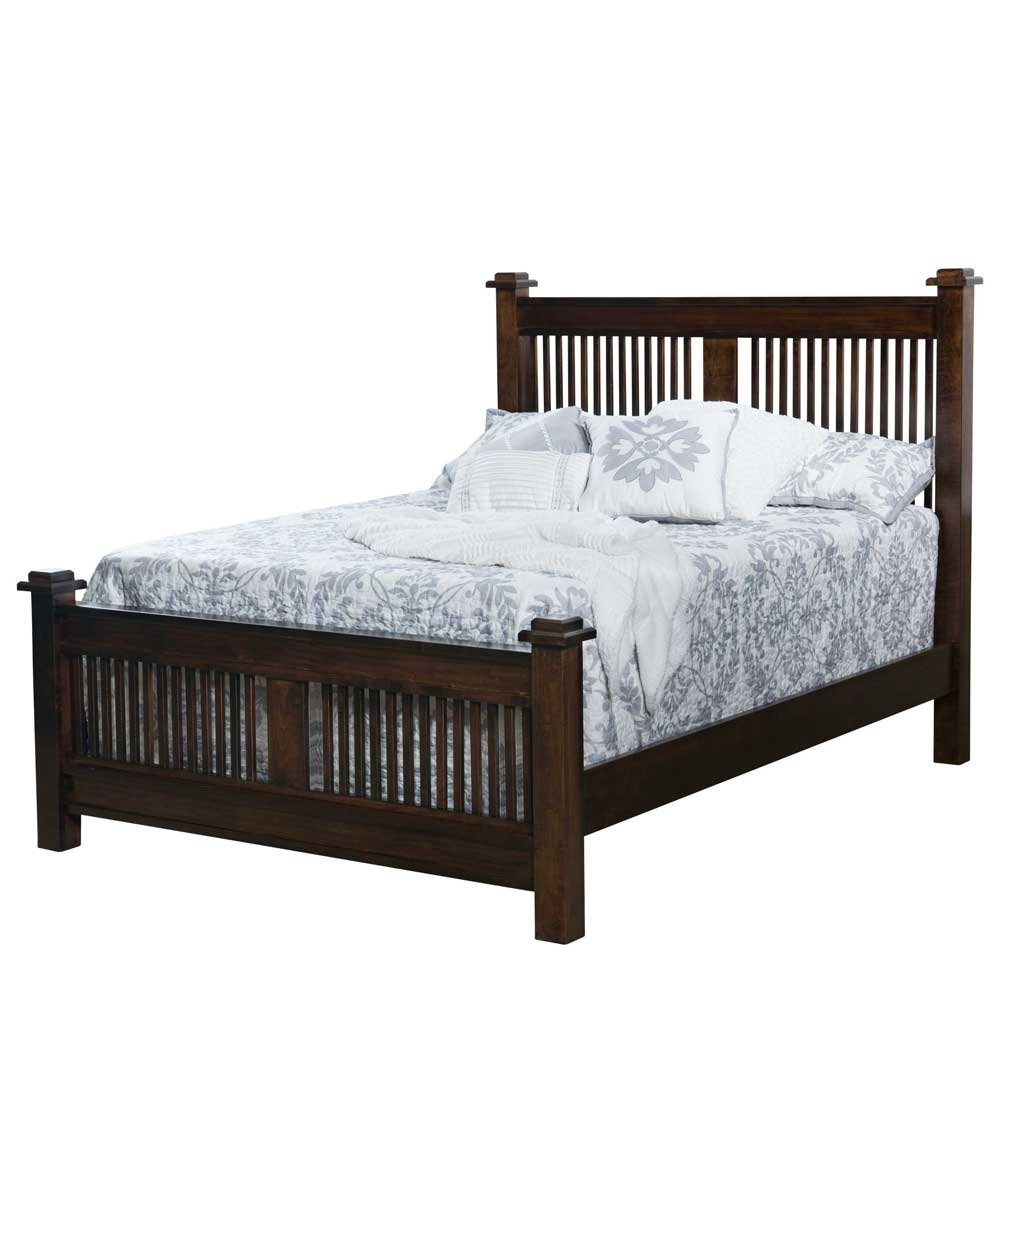 American Mission Bed Amish Direct Furniture